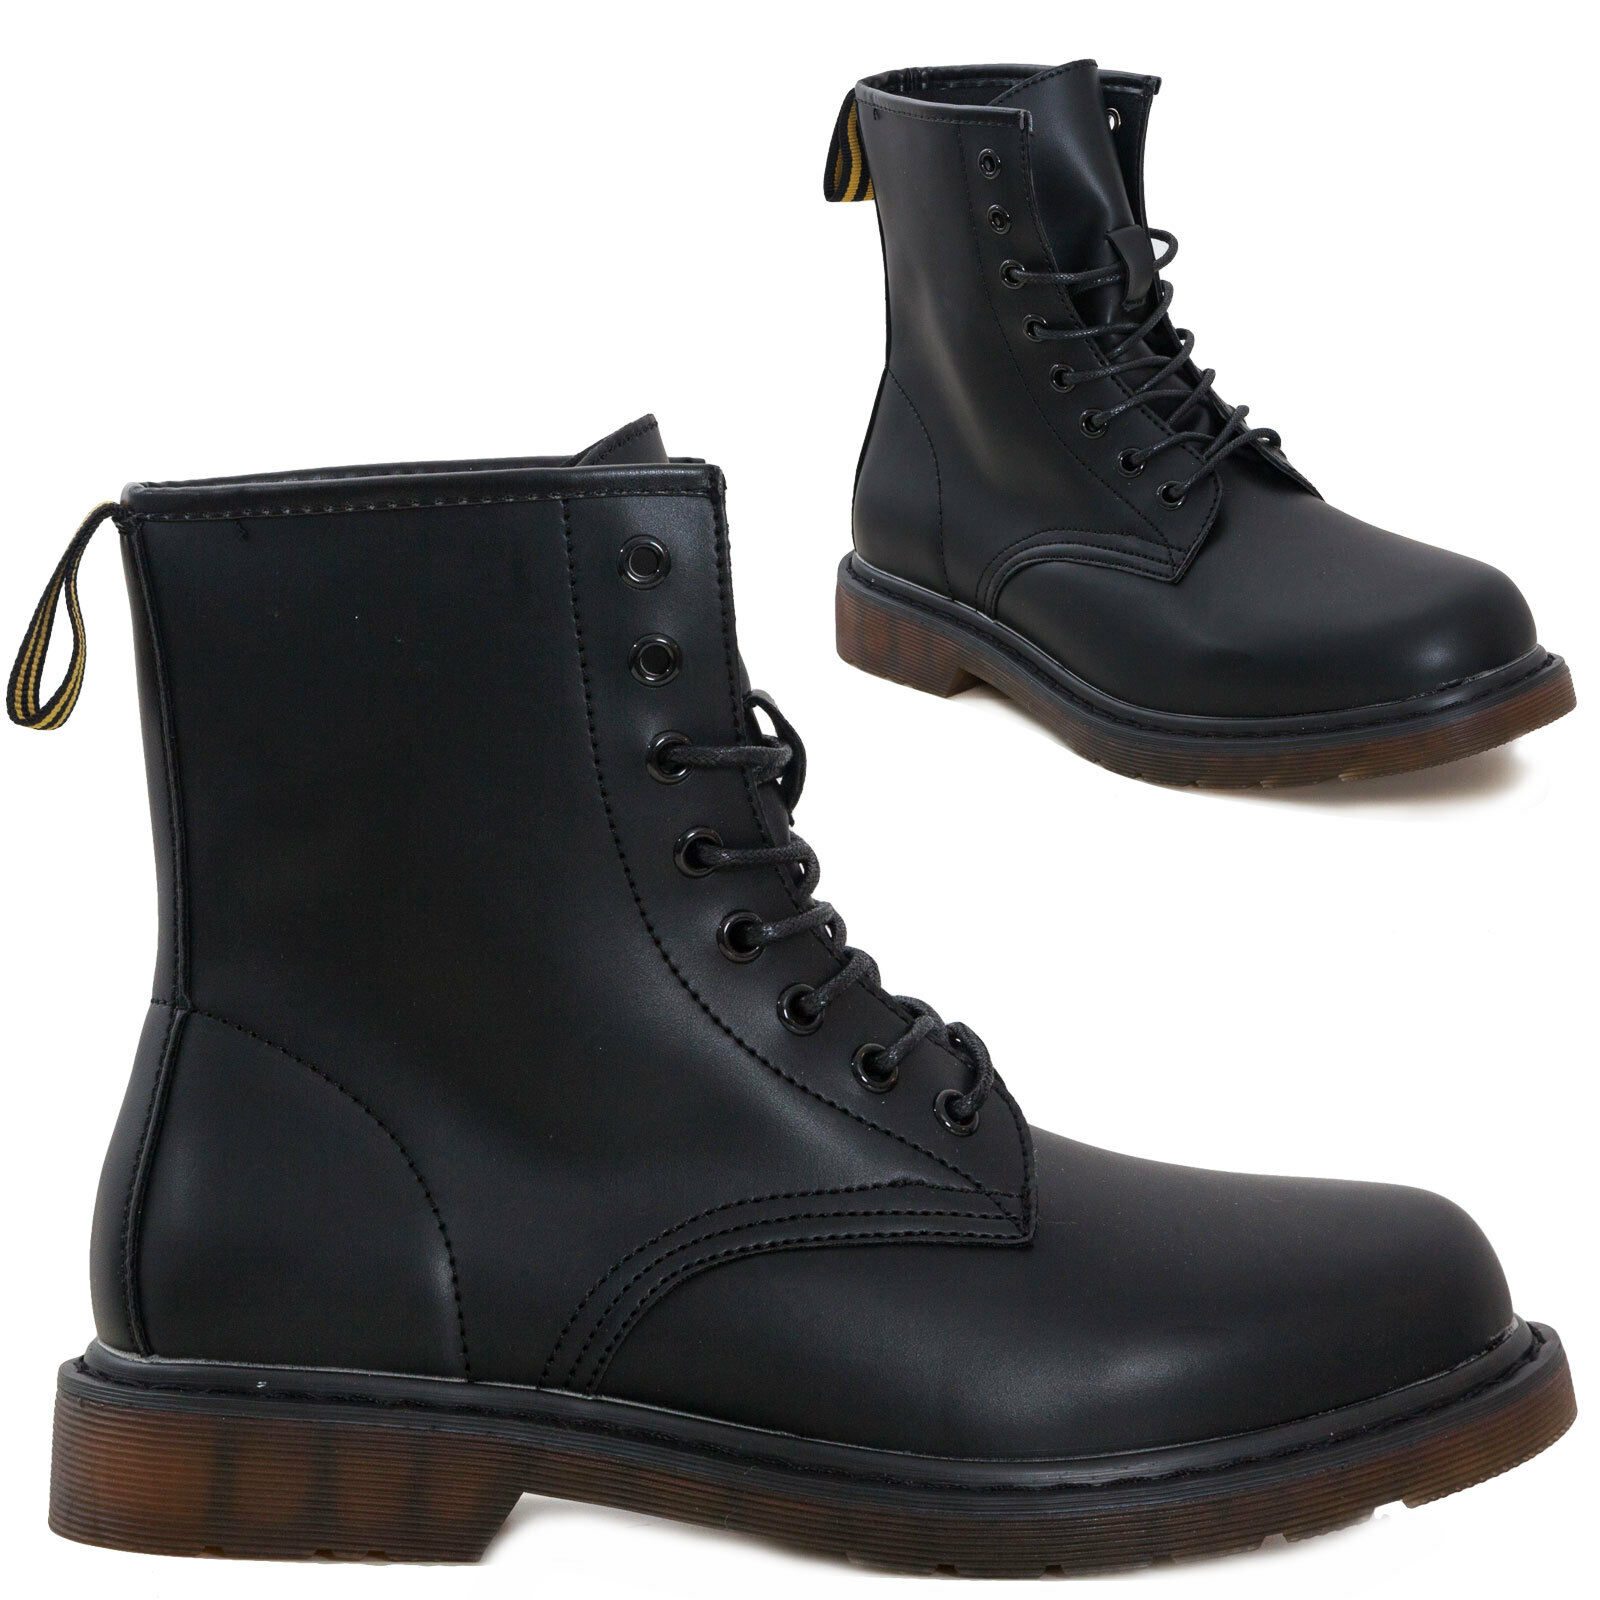 Men's shoes booties combat boots ankle boots motorcyclist laced biker Y1800